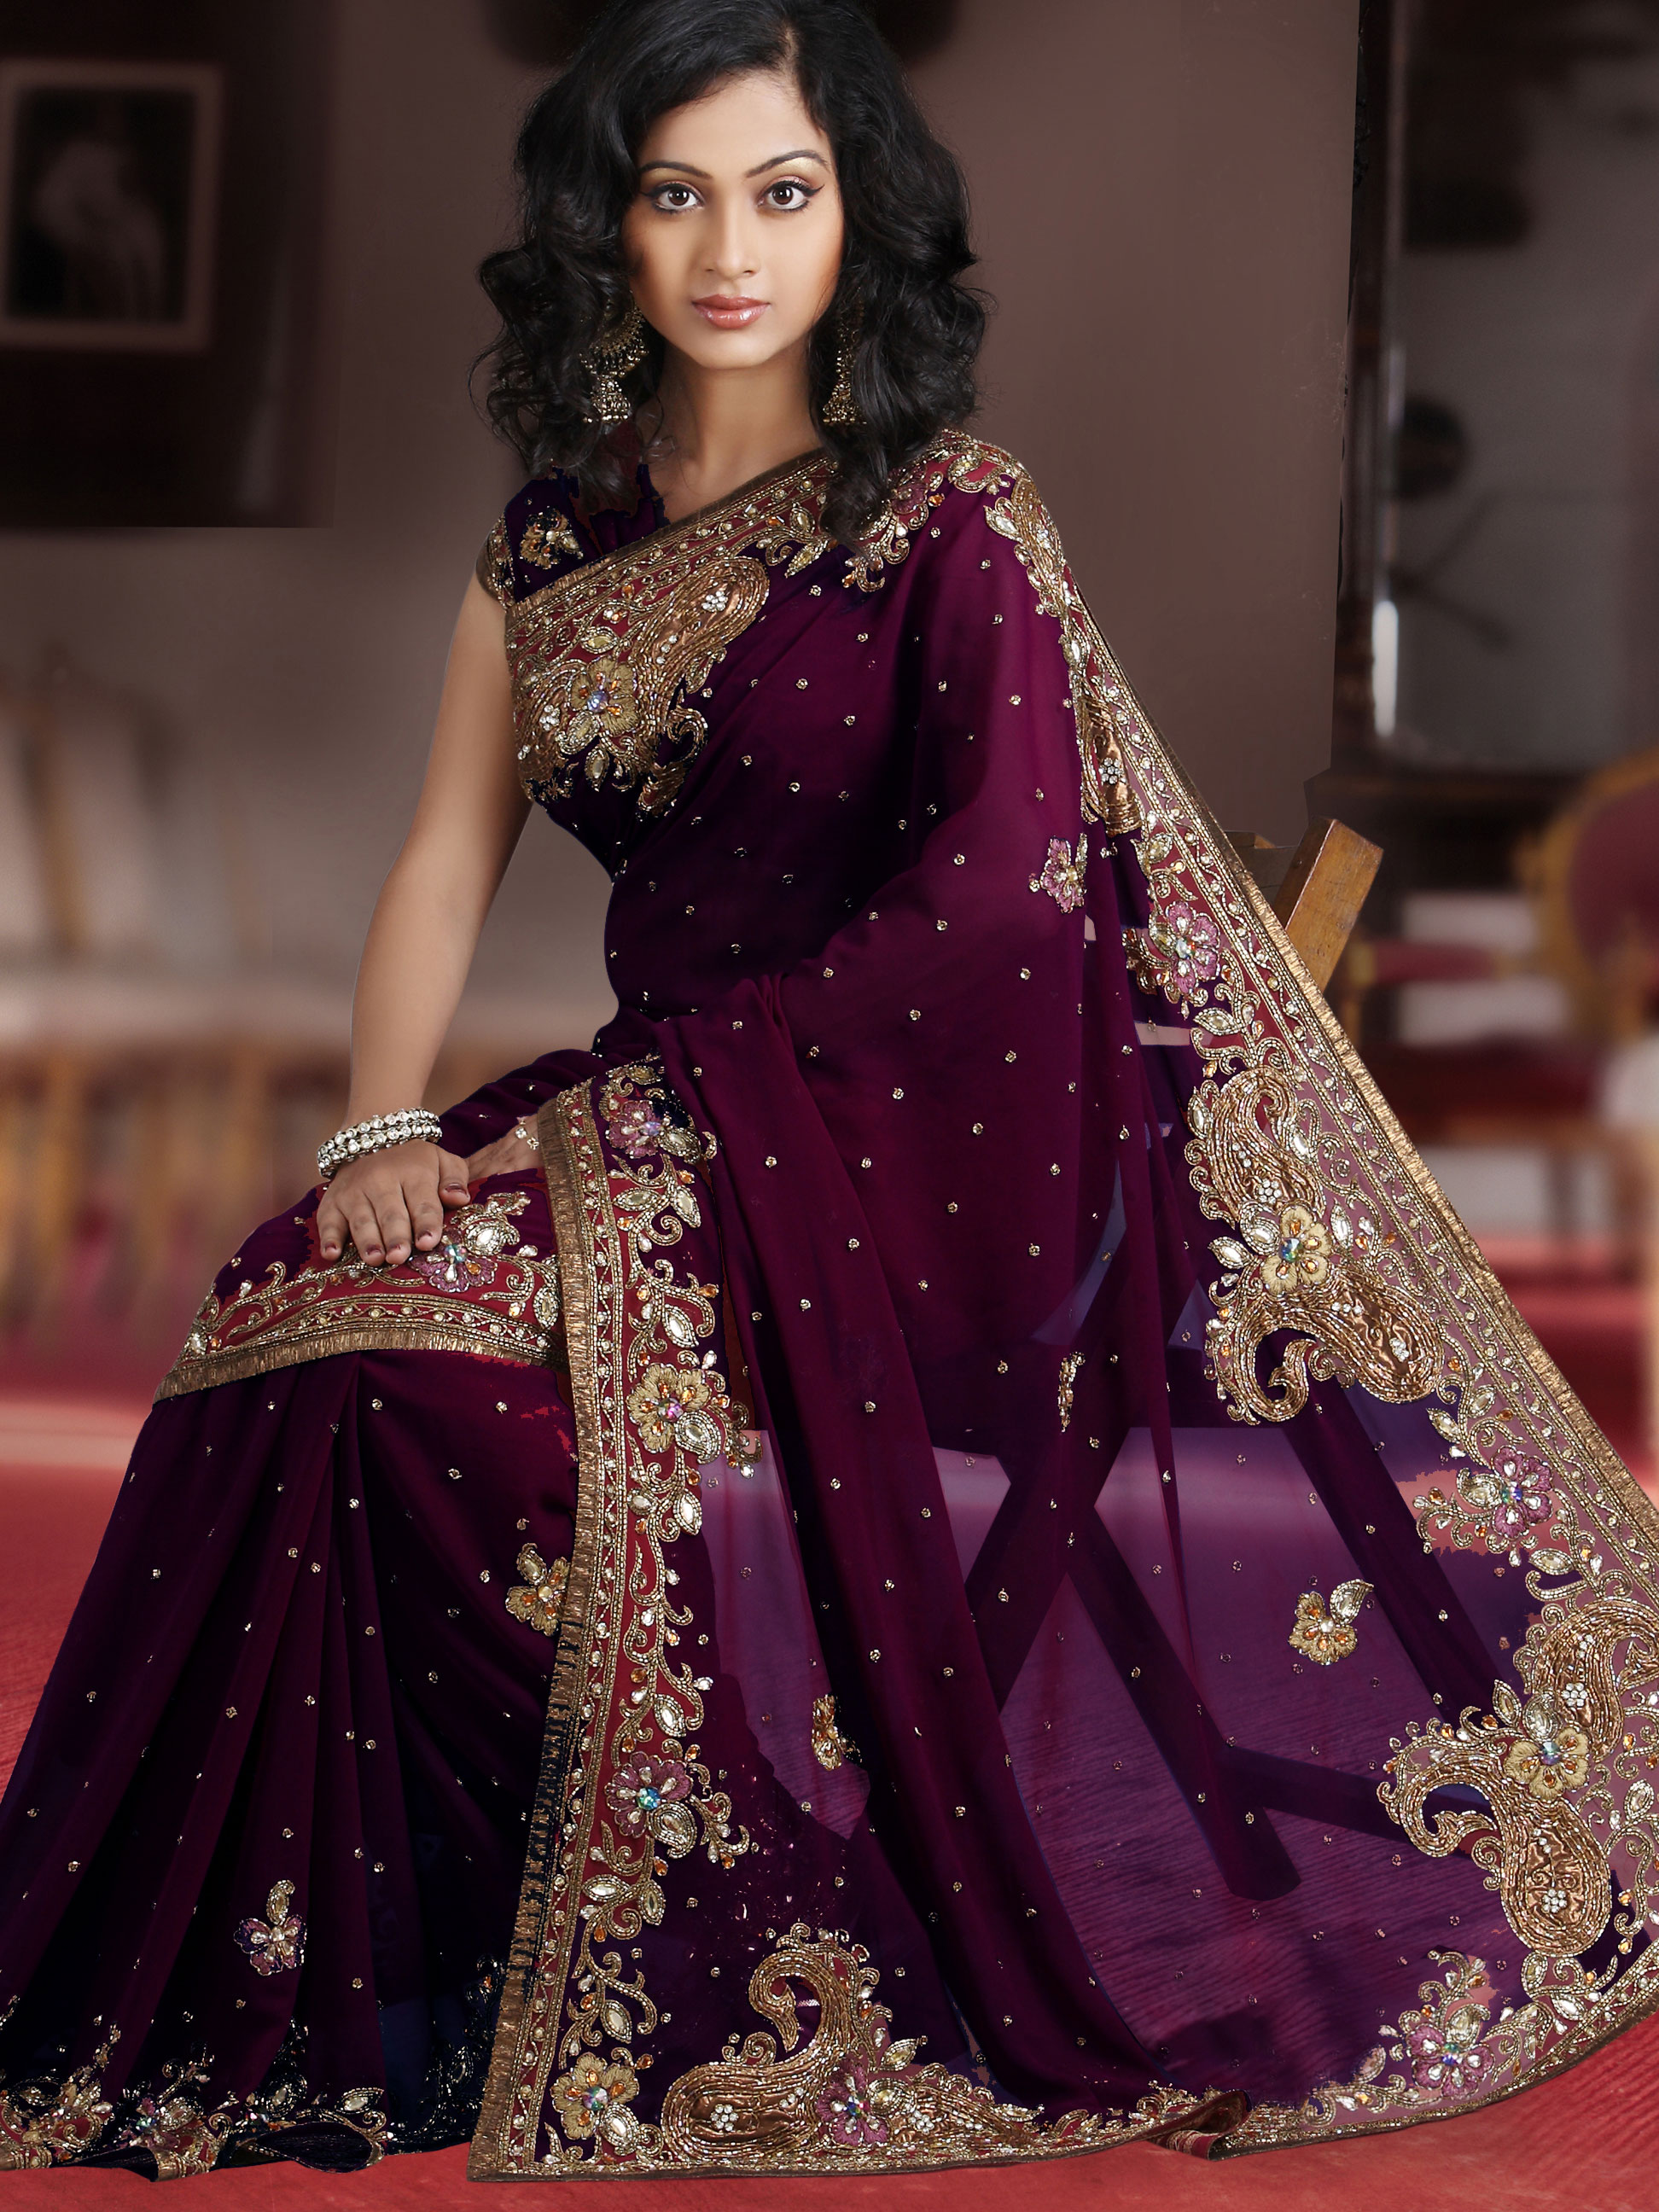 Wedding Saree Designs 2017 | Indian Traditional Wedding ...